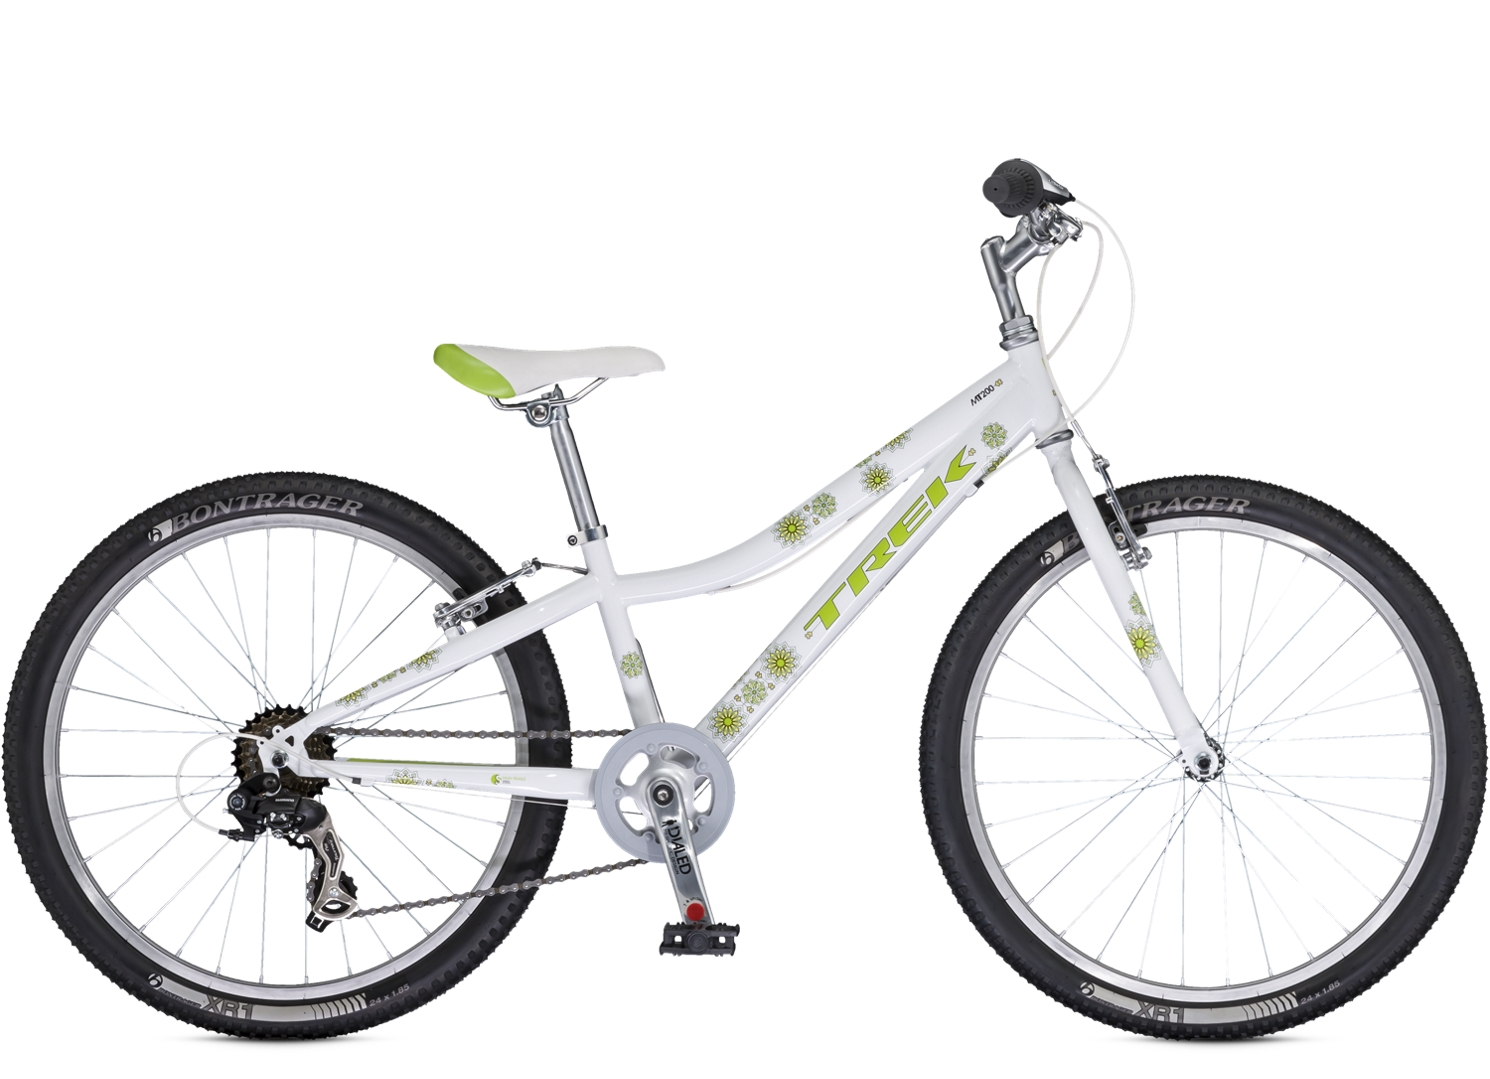 Buy Kids Bikes from USA's #1 Trek Dealer; we offer a large selection of Kid's Bikes and our Price Match Guarantee and Trade Up program means lower prices for you now and in the future.